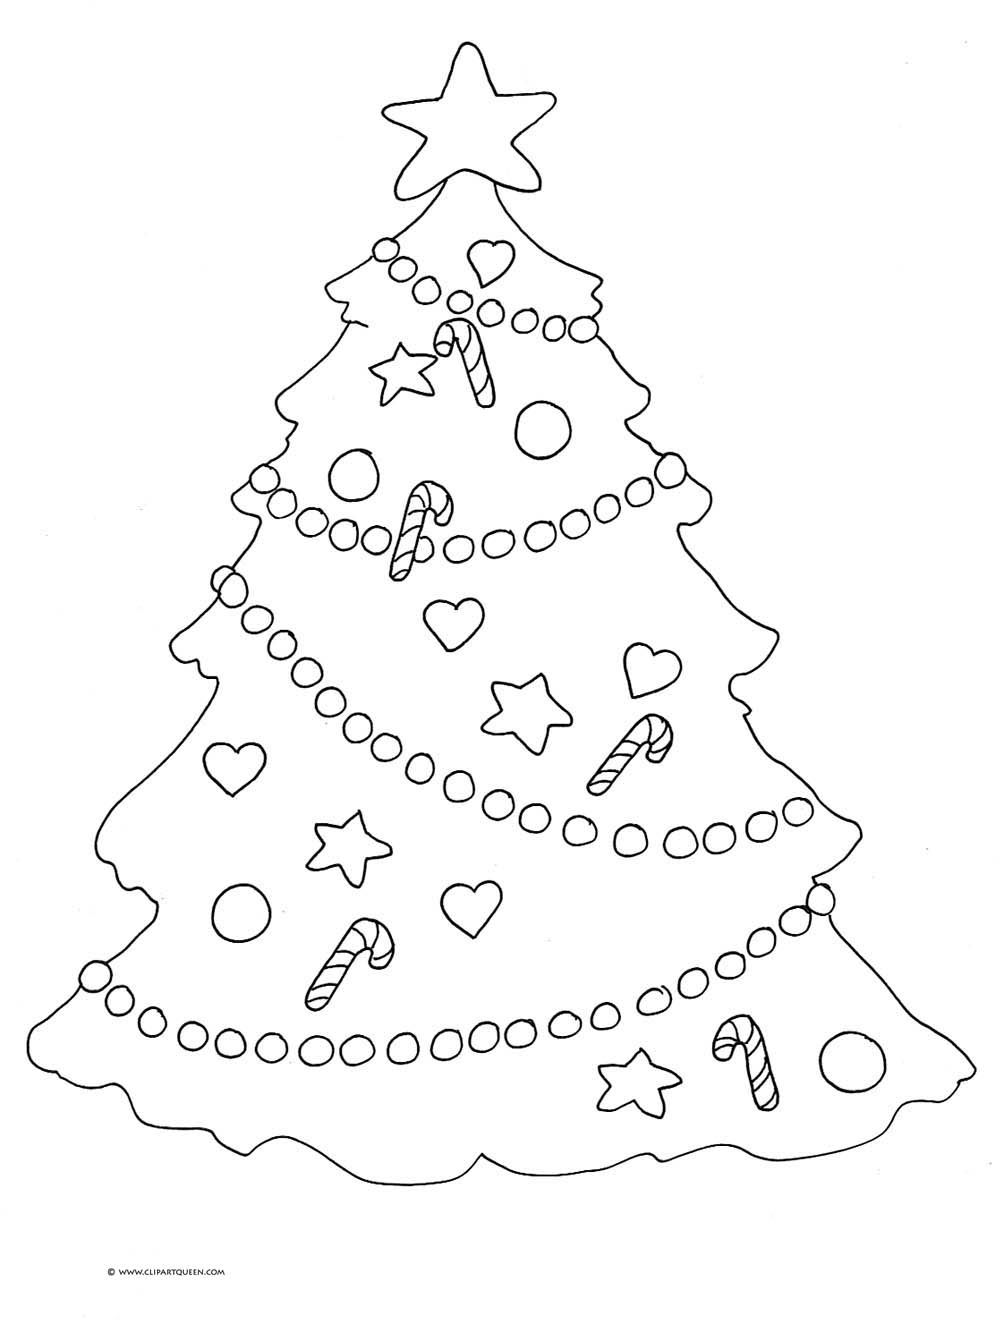 Christmas Clipart Colouring Pages Page 3 Coloring Tree Star Decorations